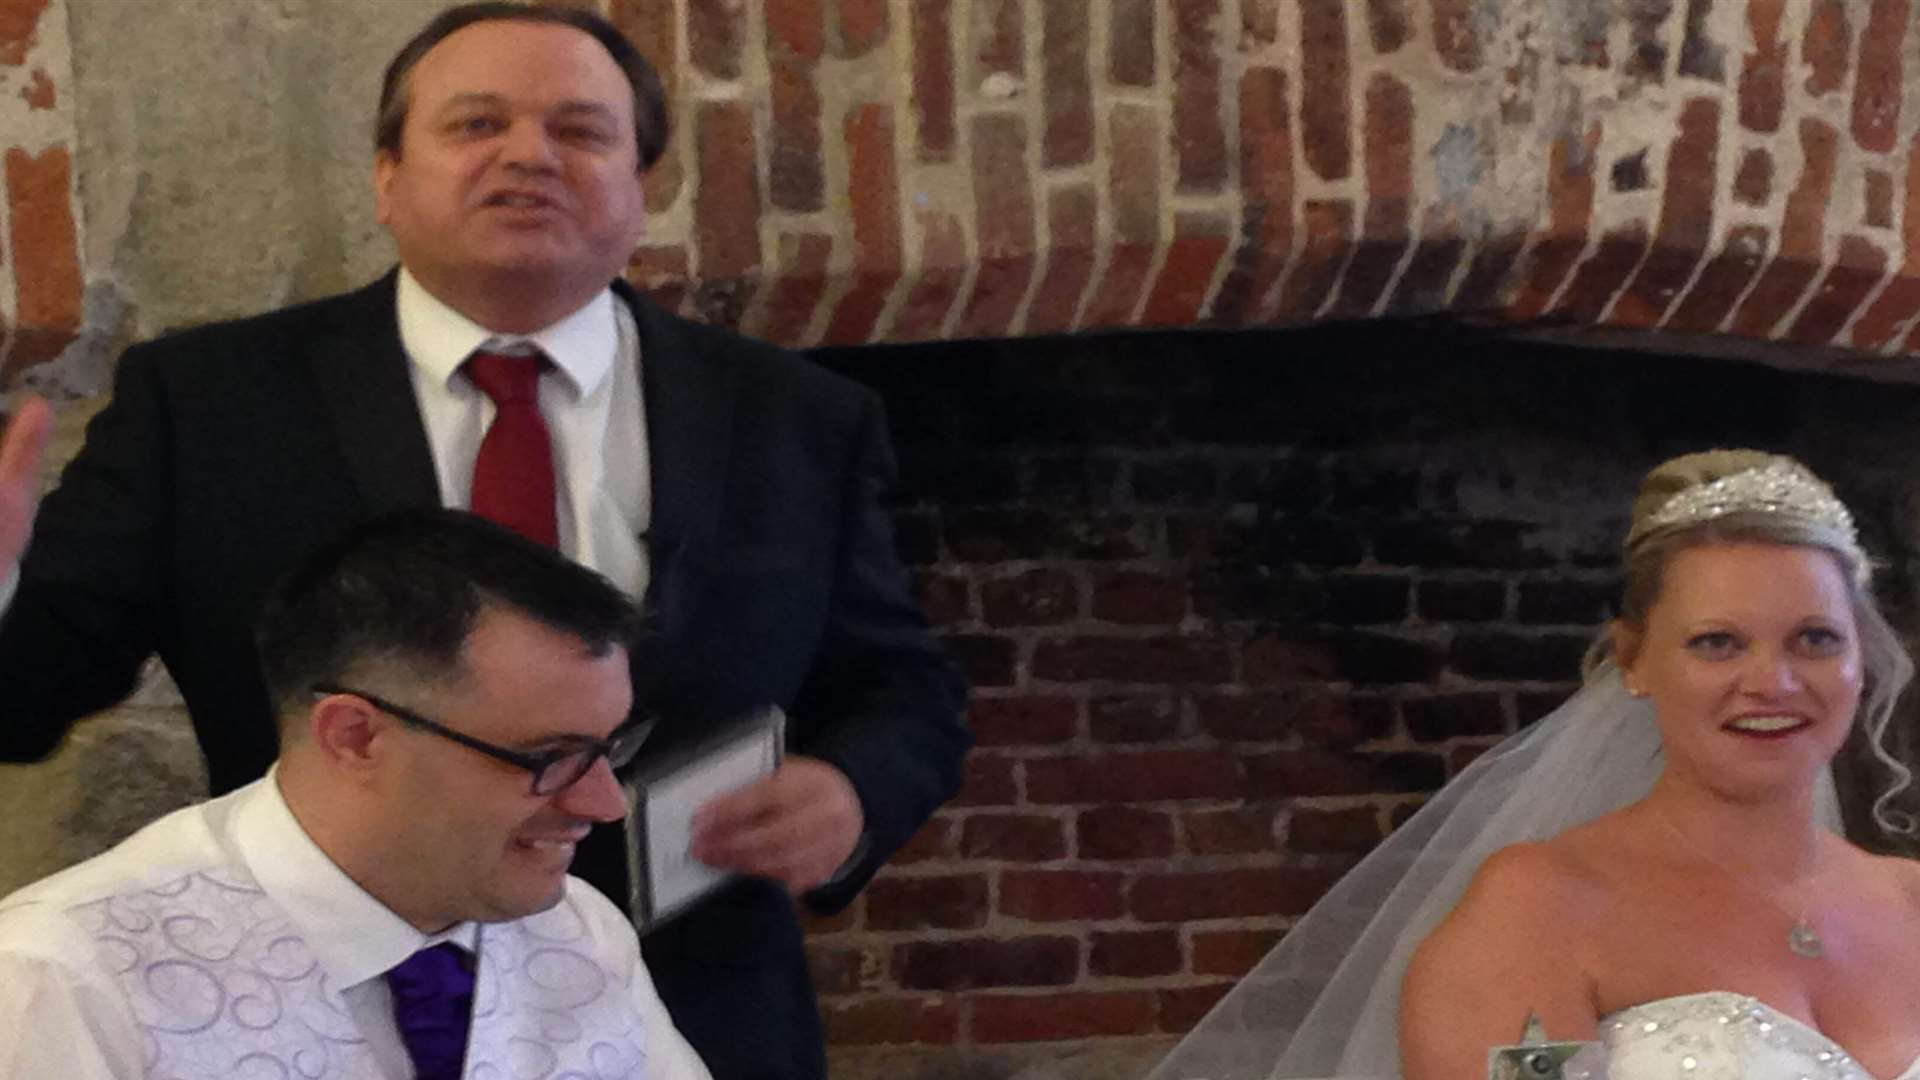 Former EastEnders star Shaun Williamson made a guest appearance at Stuart and Kirsty's wedding